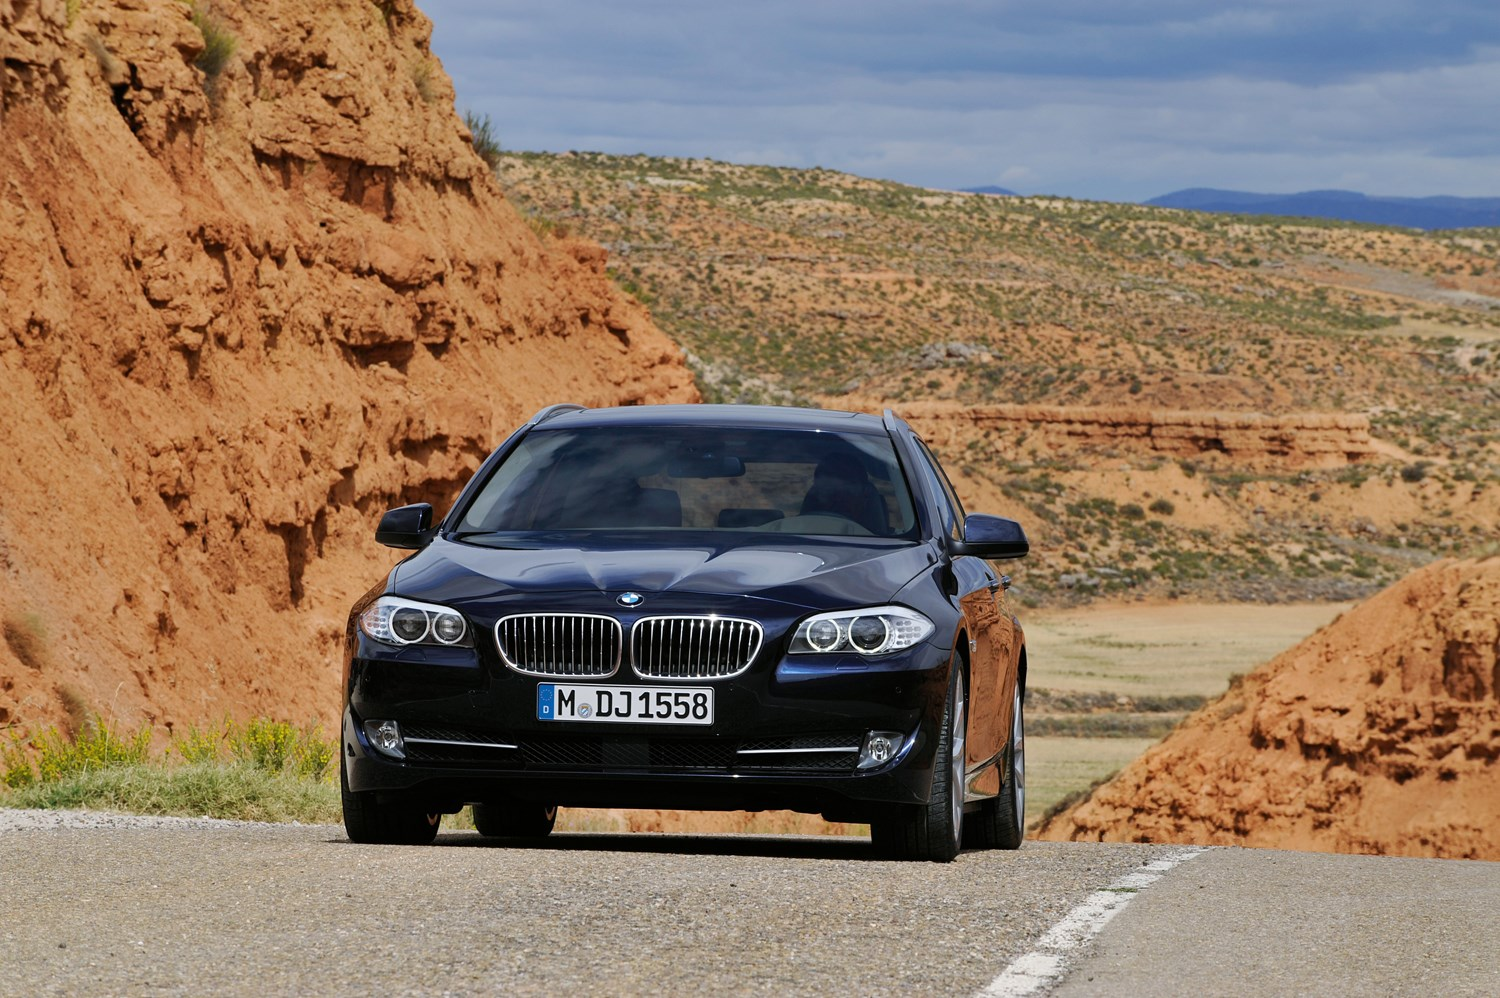 bmw 5 series touring review 2010 parkers. Black Bedroom Furniture Sets. Home Design Ideas